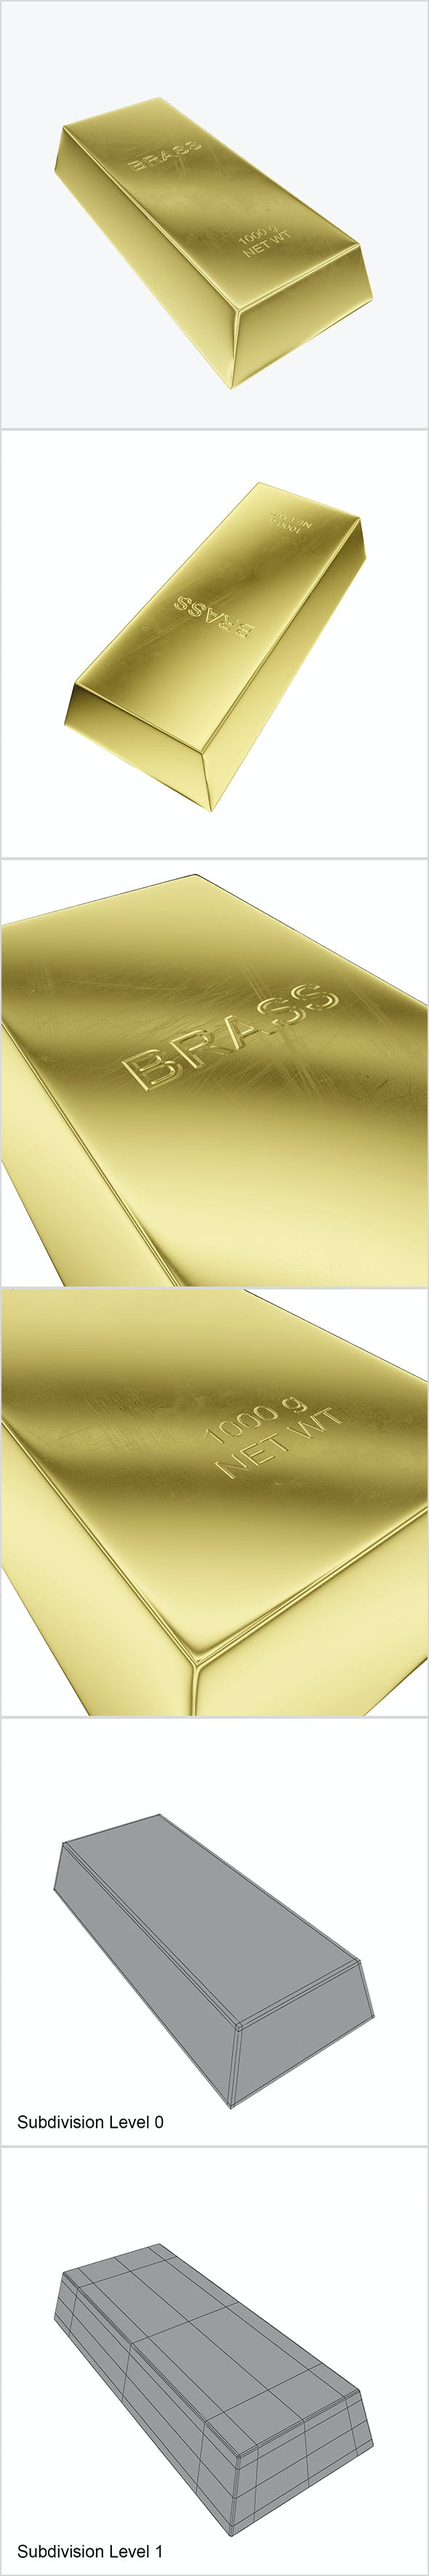 Ingot brass - 3DOcean Item for Sale